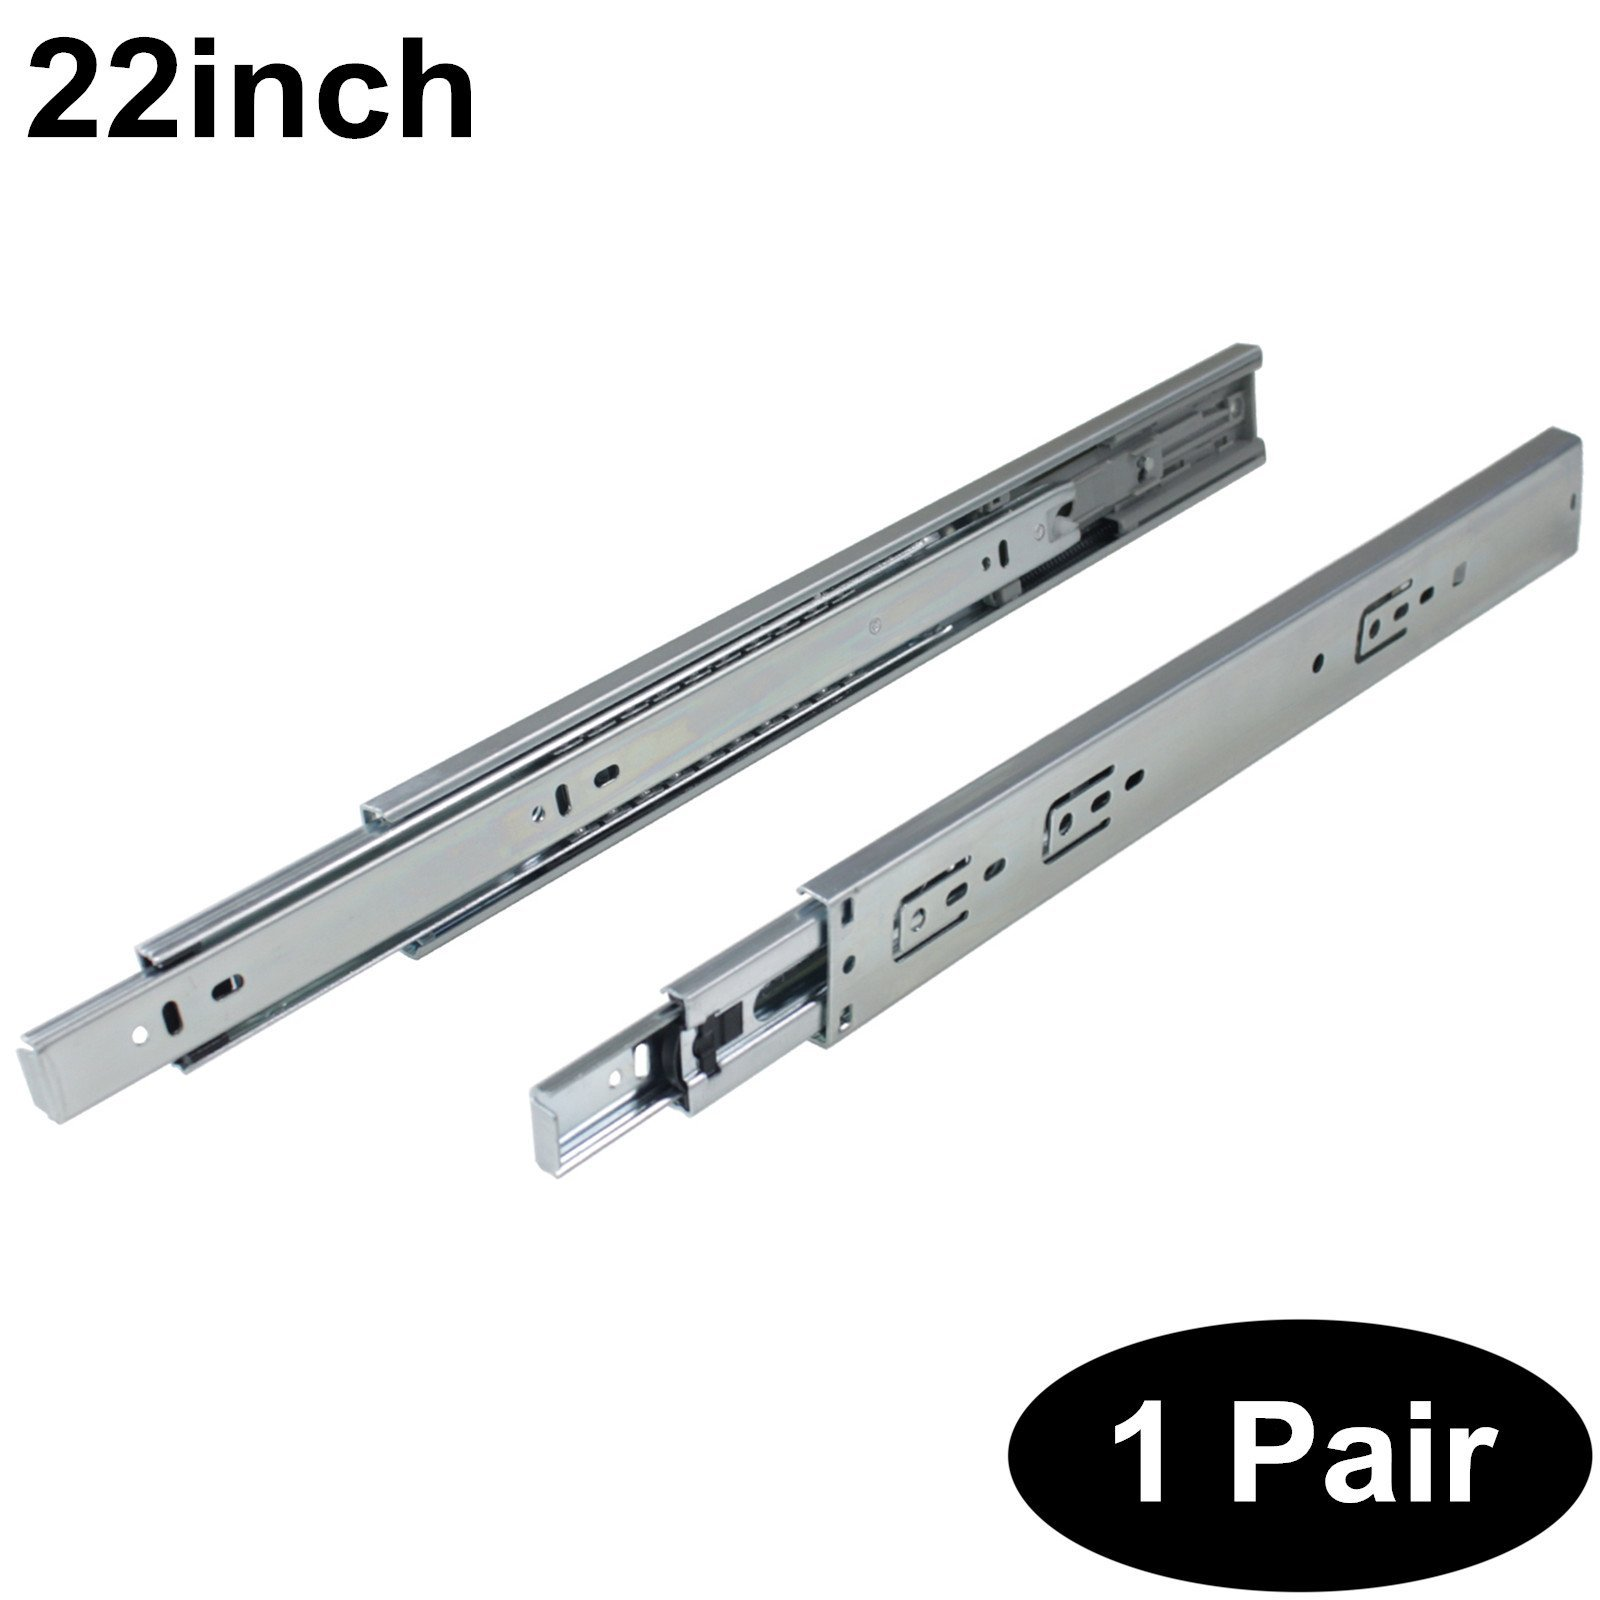 1 Pair Soft Close DHH32-22 inch Full Extension Side Mount Drawer Slides 3-Folds Ball Bearing;100-pound Capacity